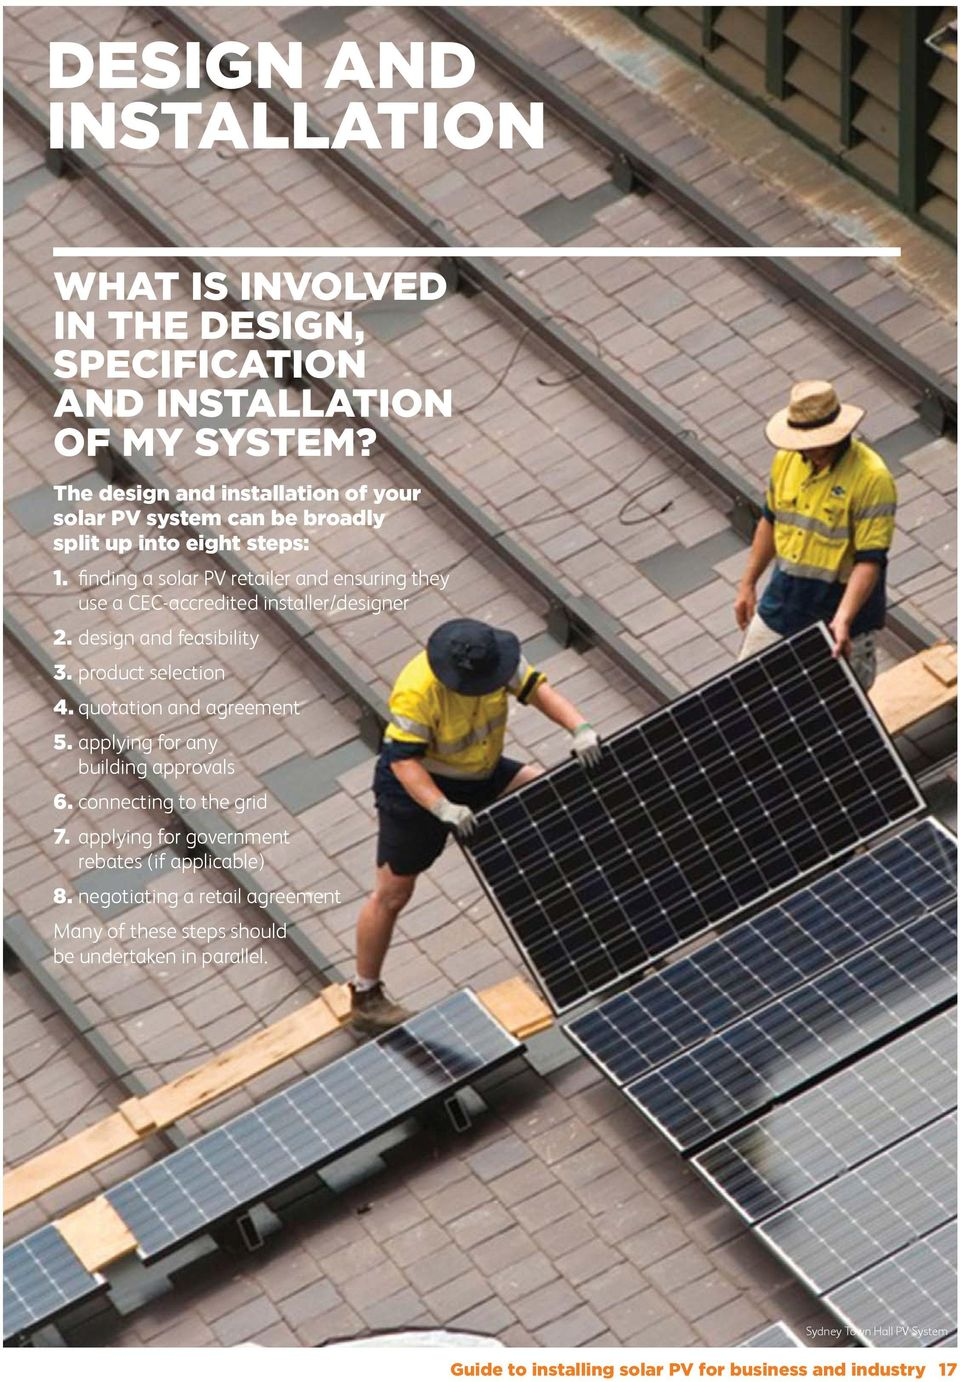 fi nding a solar PV retailer and ensuring they use a CEC-accredited installer/designer 2. design and feasibility 3. product selection 4.